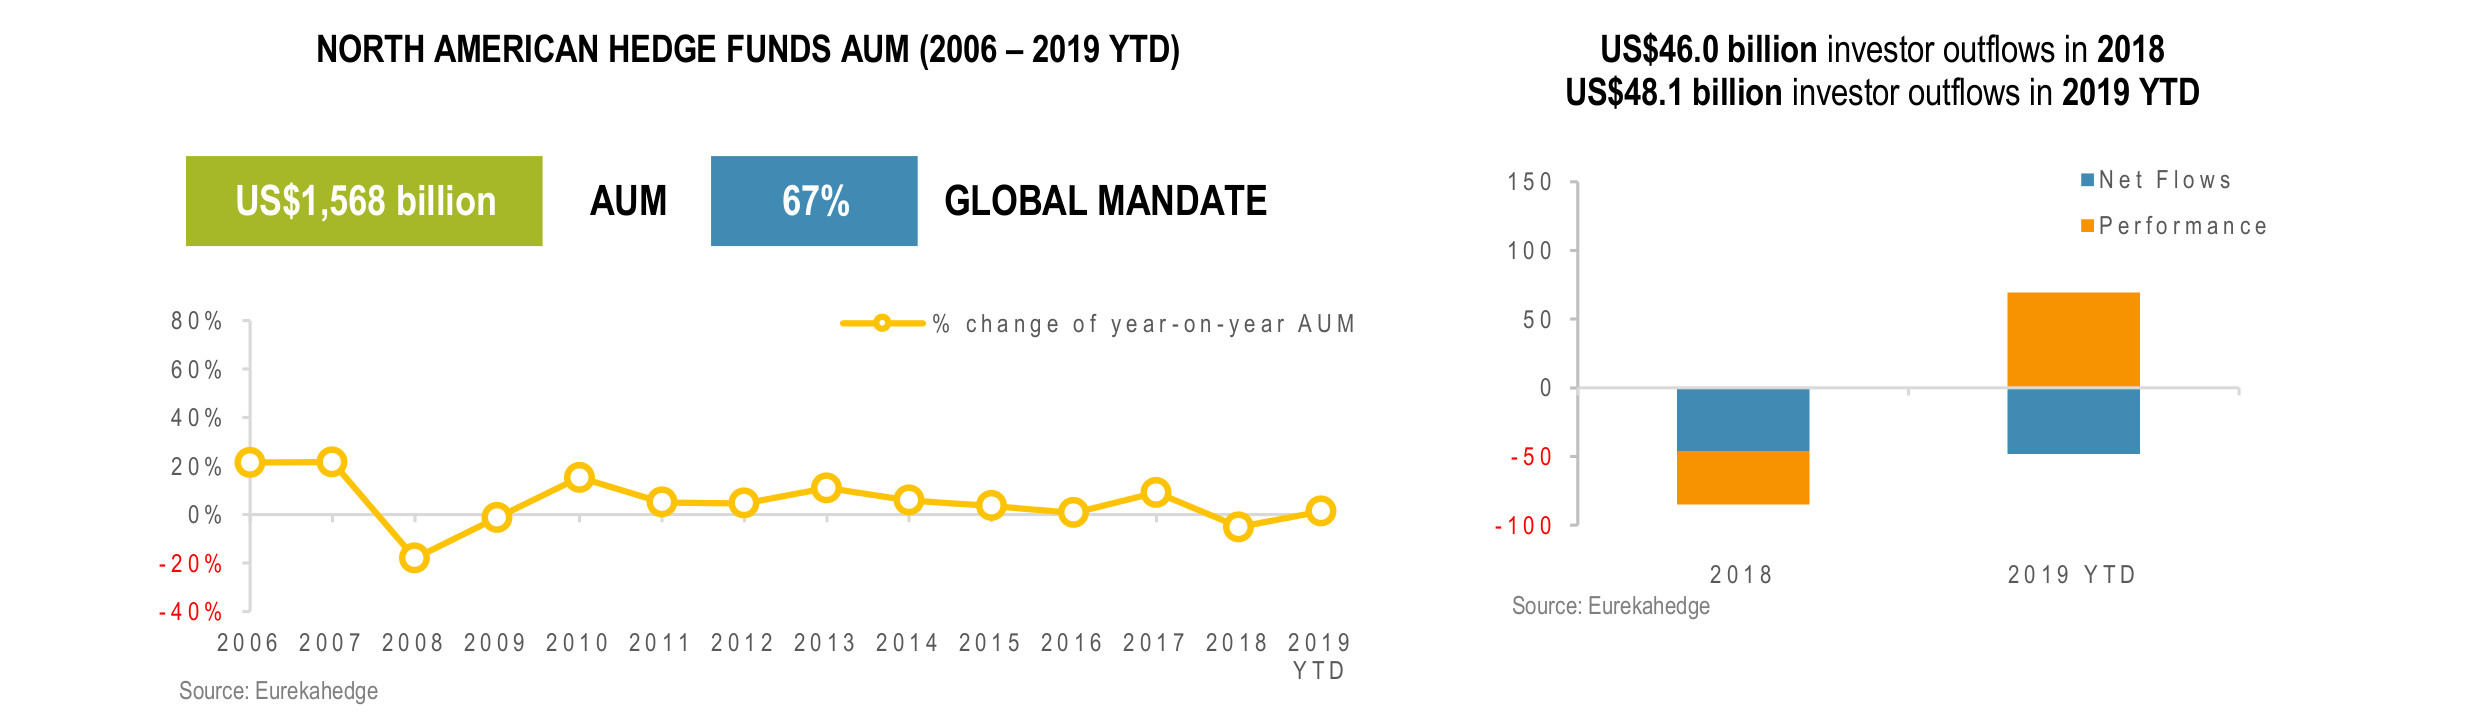 North American Hedge Funds Infographic October 2019 - AUM